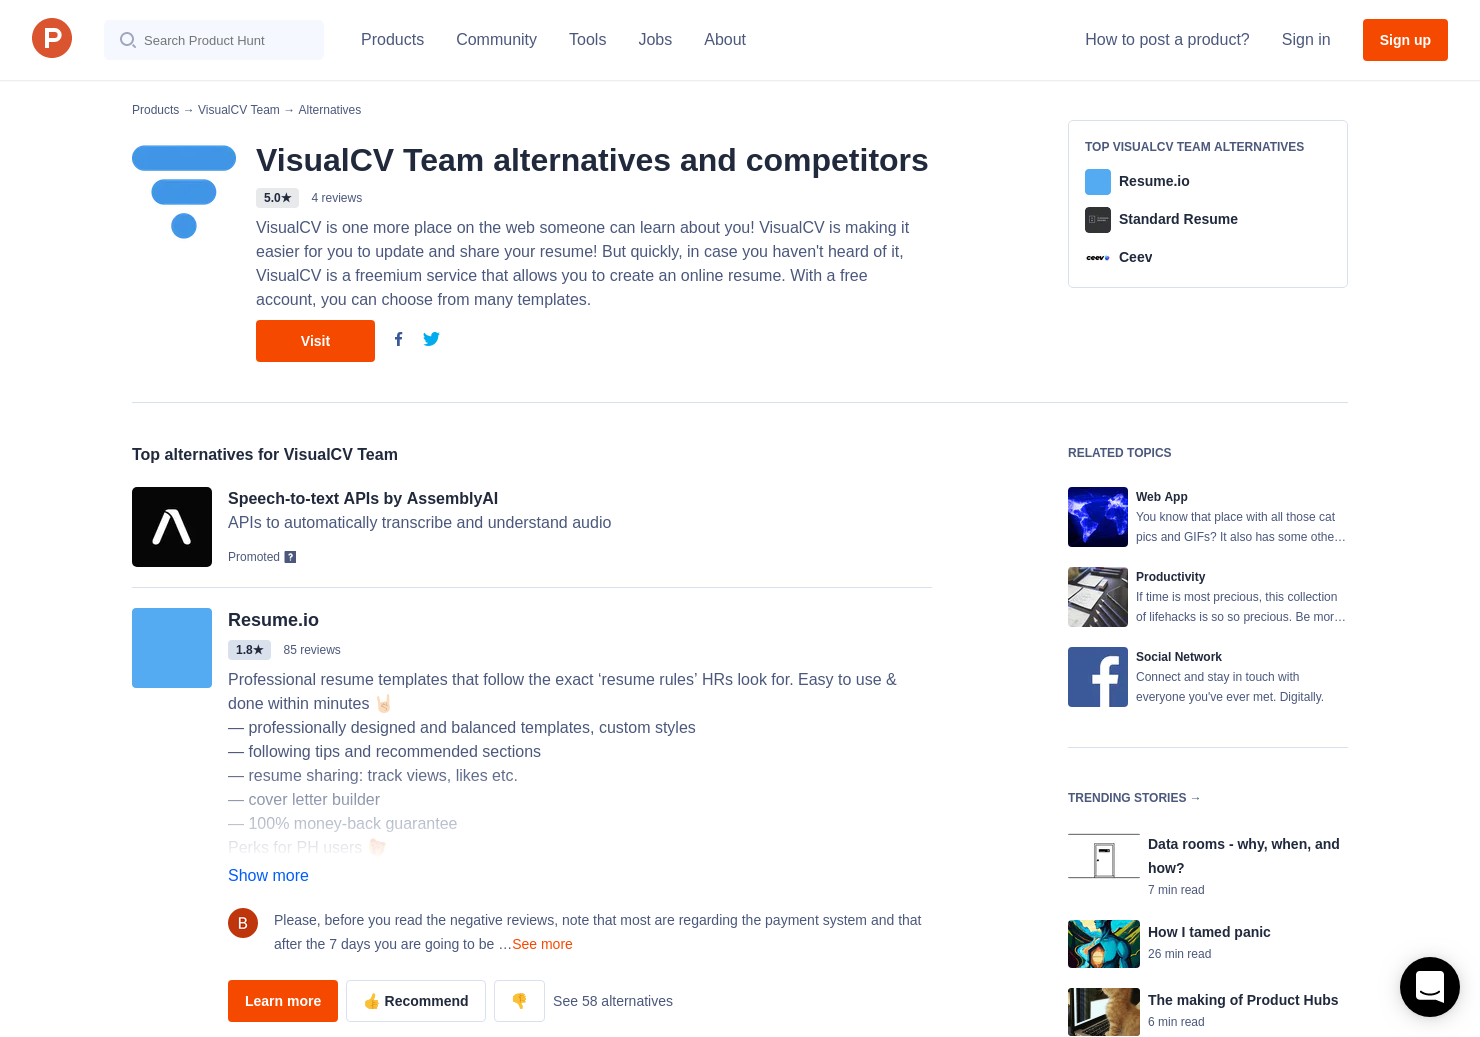 6 Alternatives To The New Visualcv Product Hunt